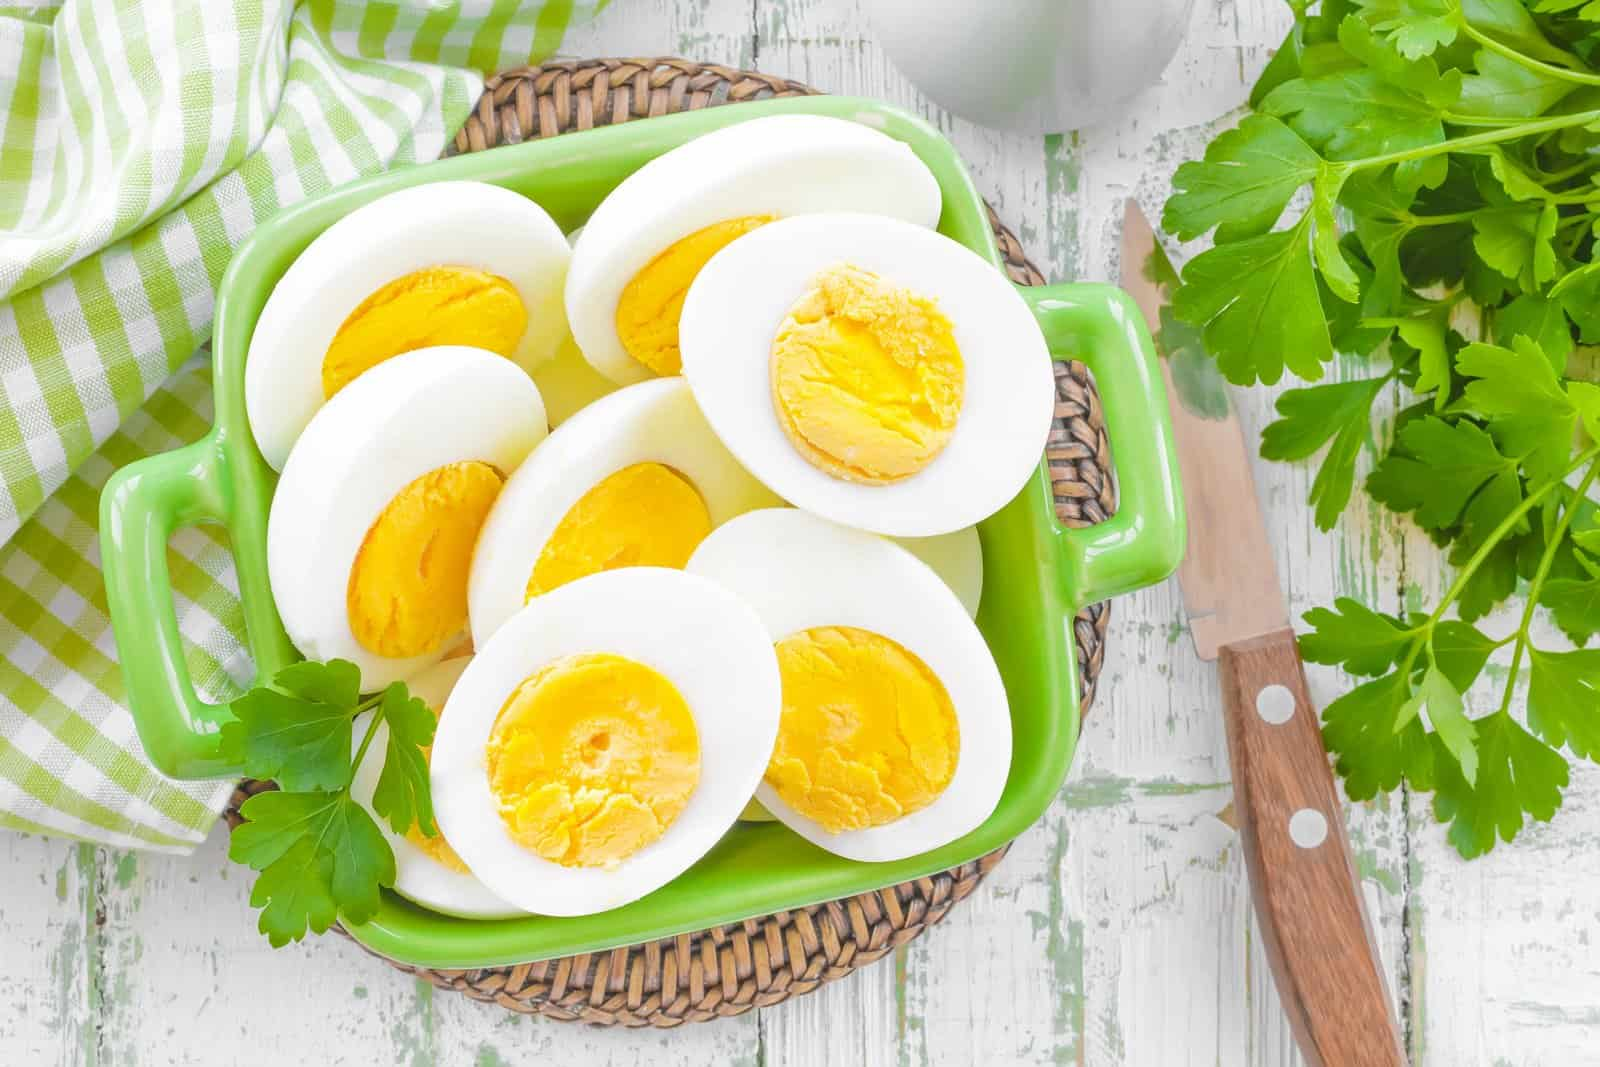 6 Reasons Eggs and Weight Loss Are Linked